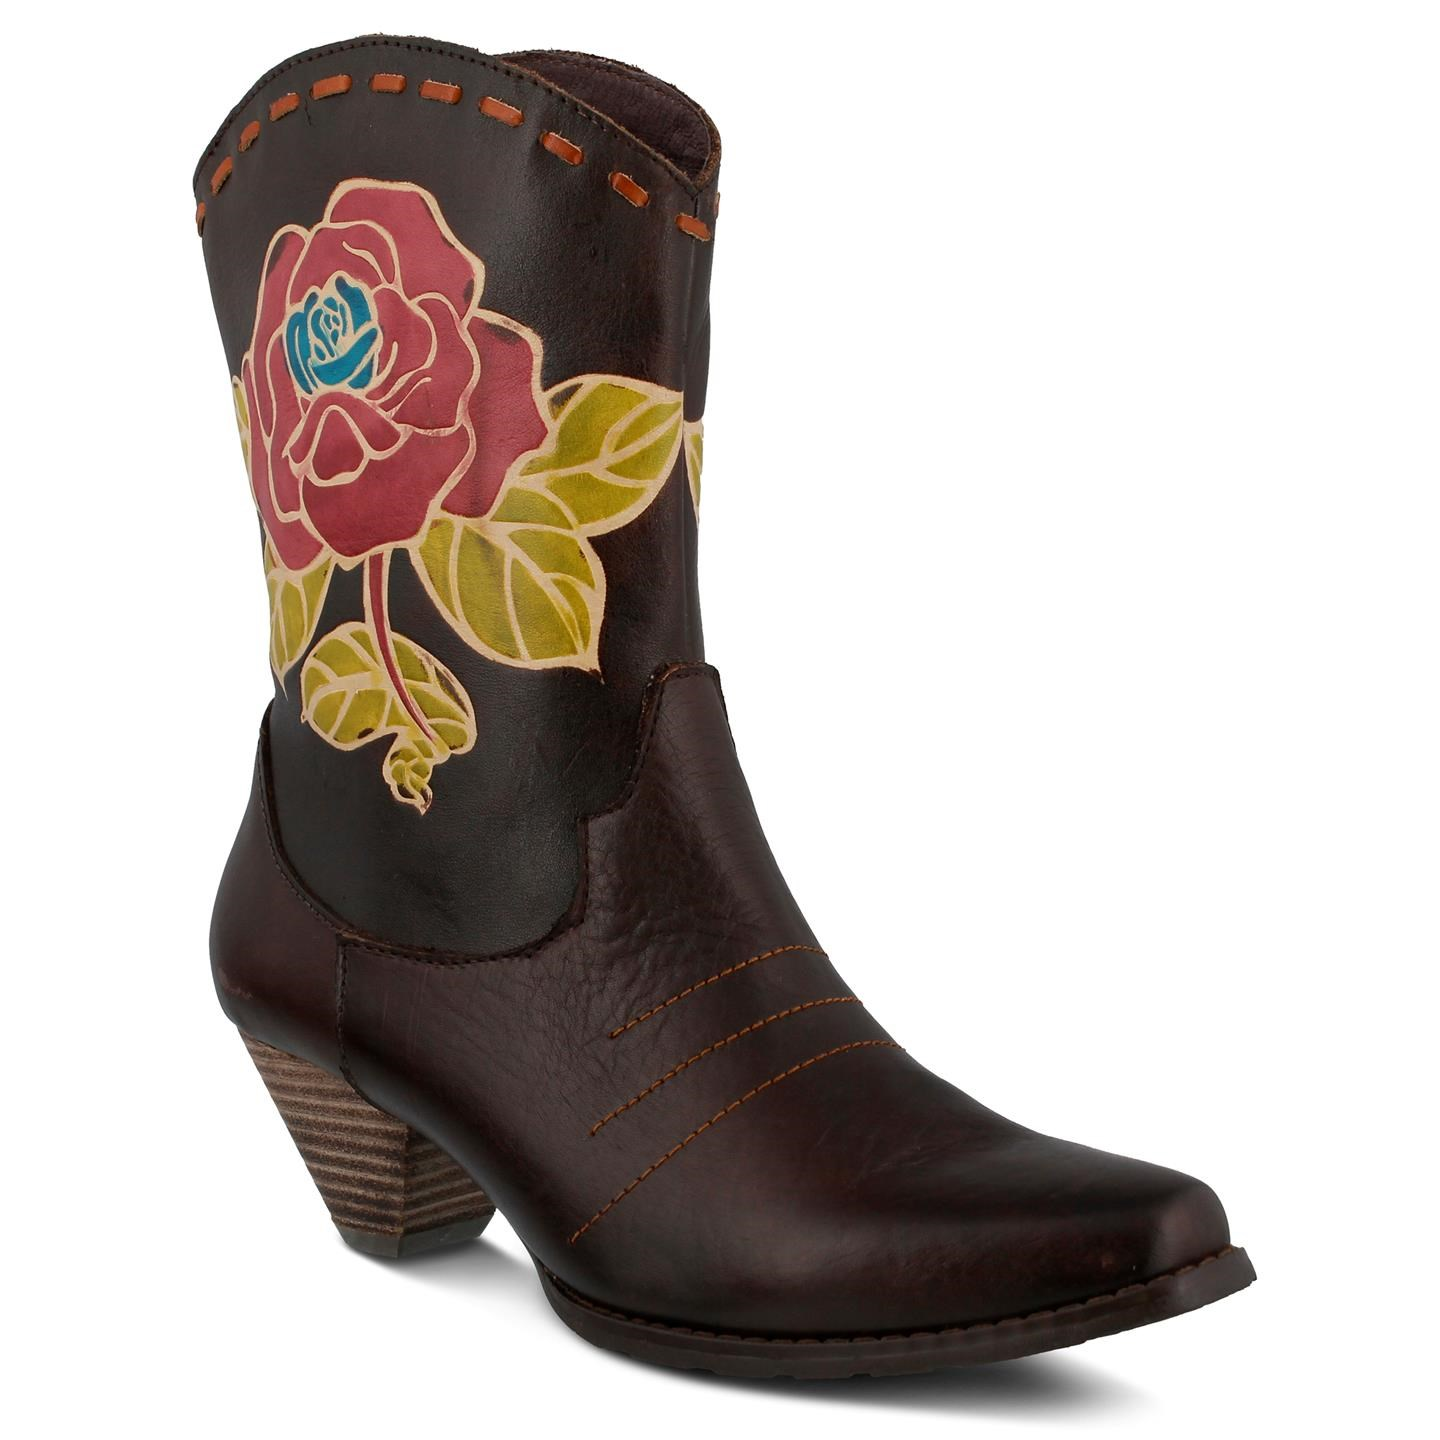 L'Artiste Aster By Spring Step Brown Leather Boots 38 EU   8 US Women by Spring Step